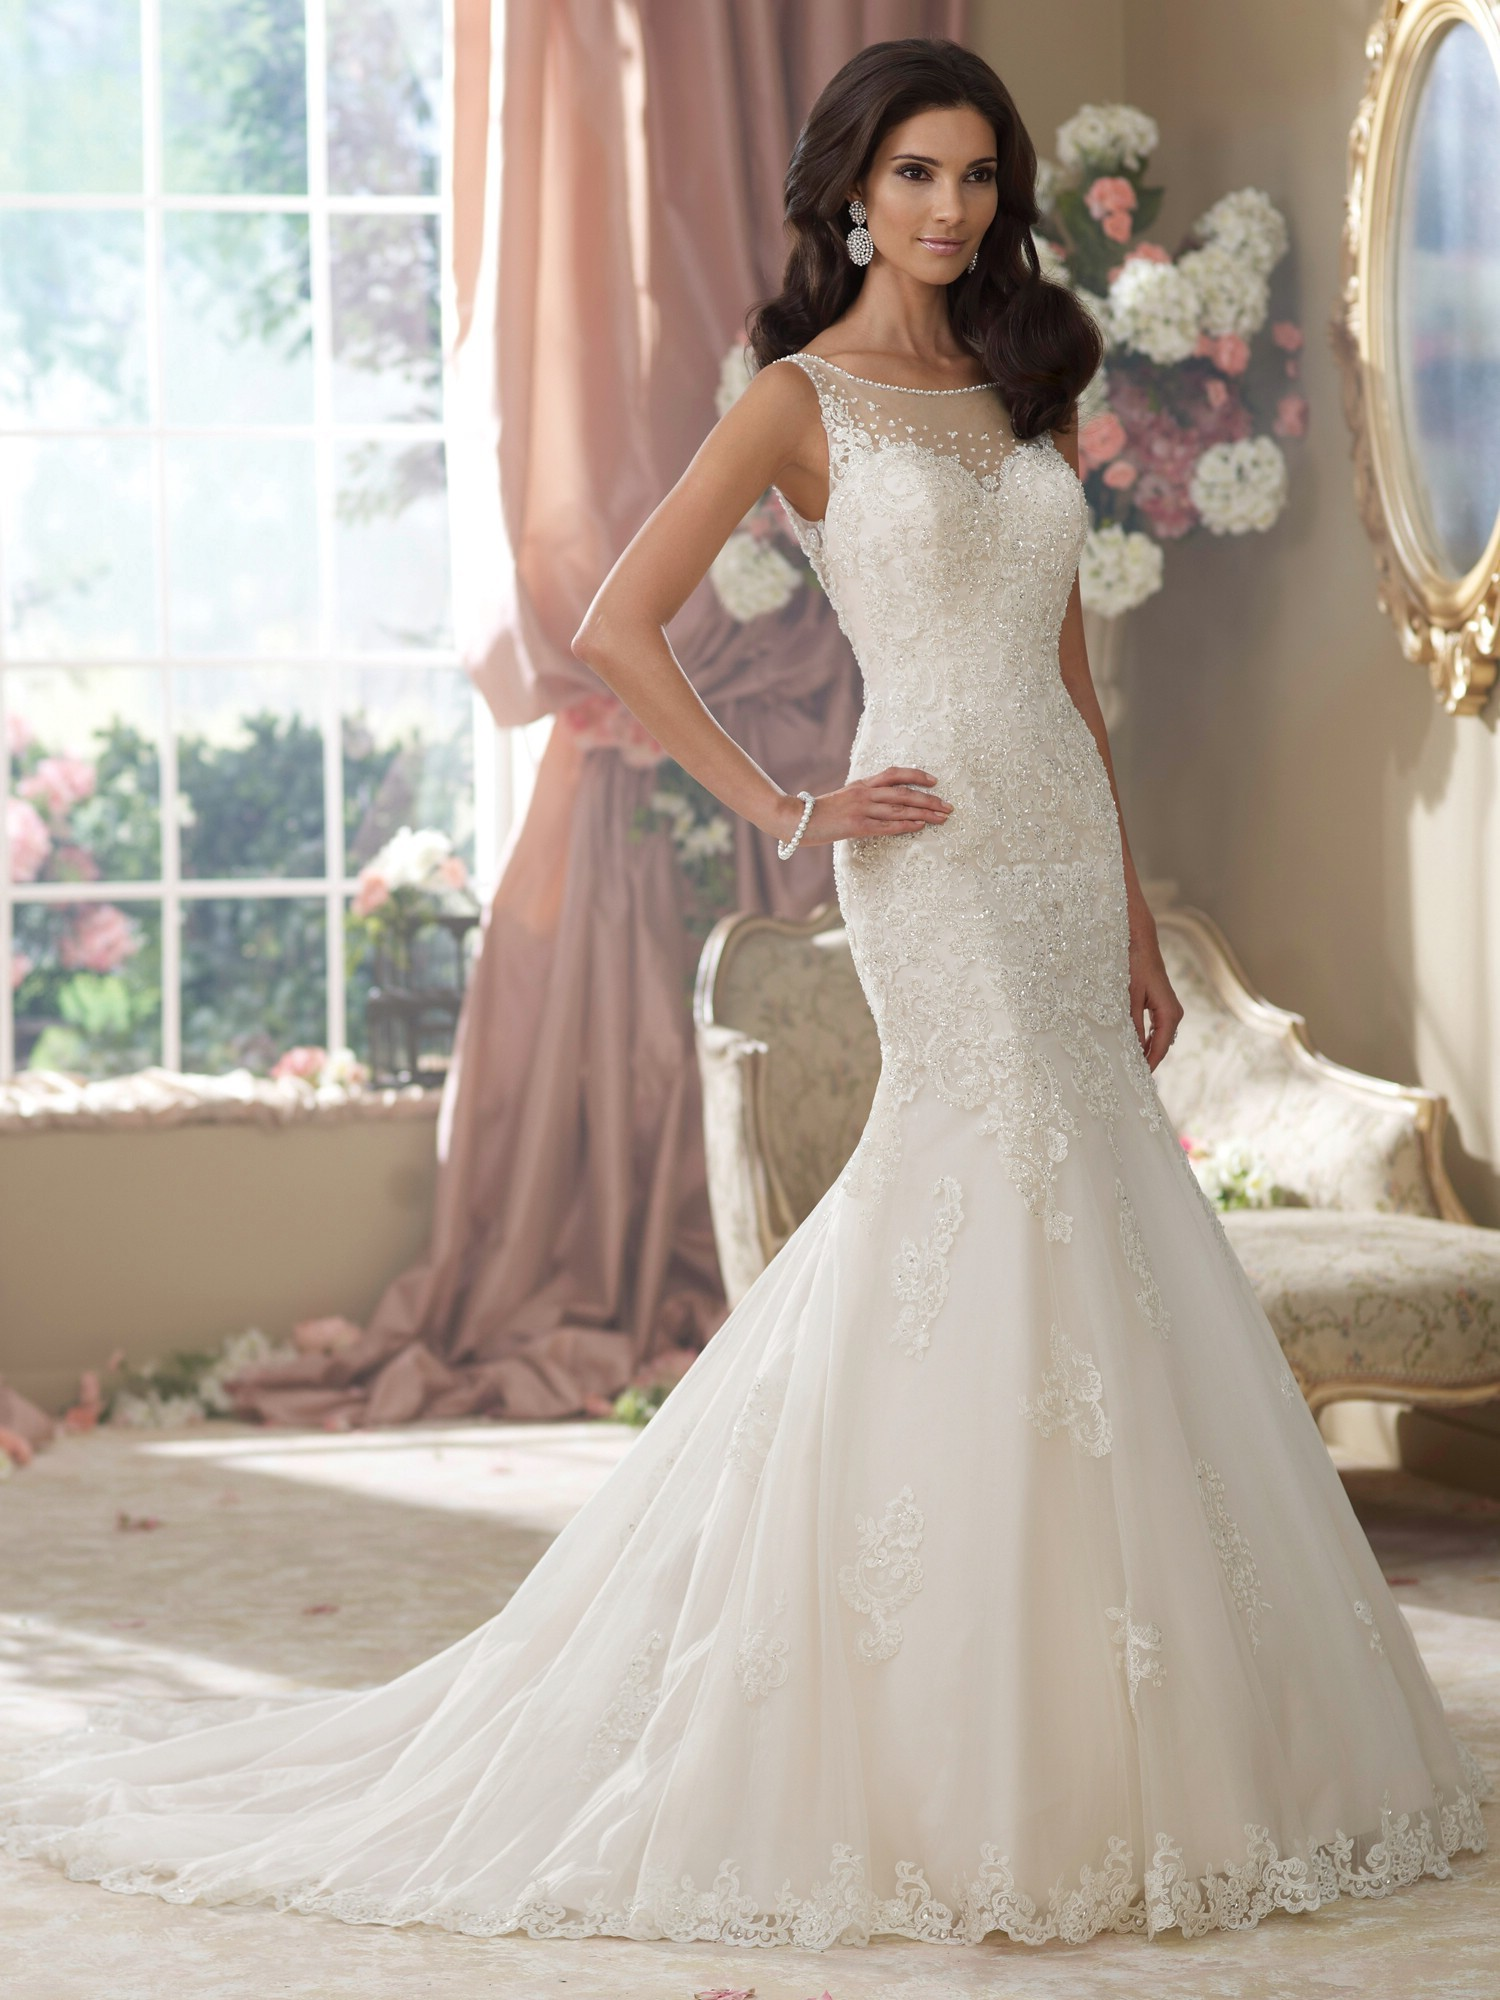 Elegant mermaid wedding dress